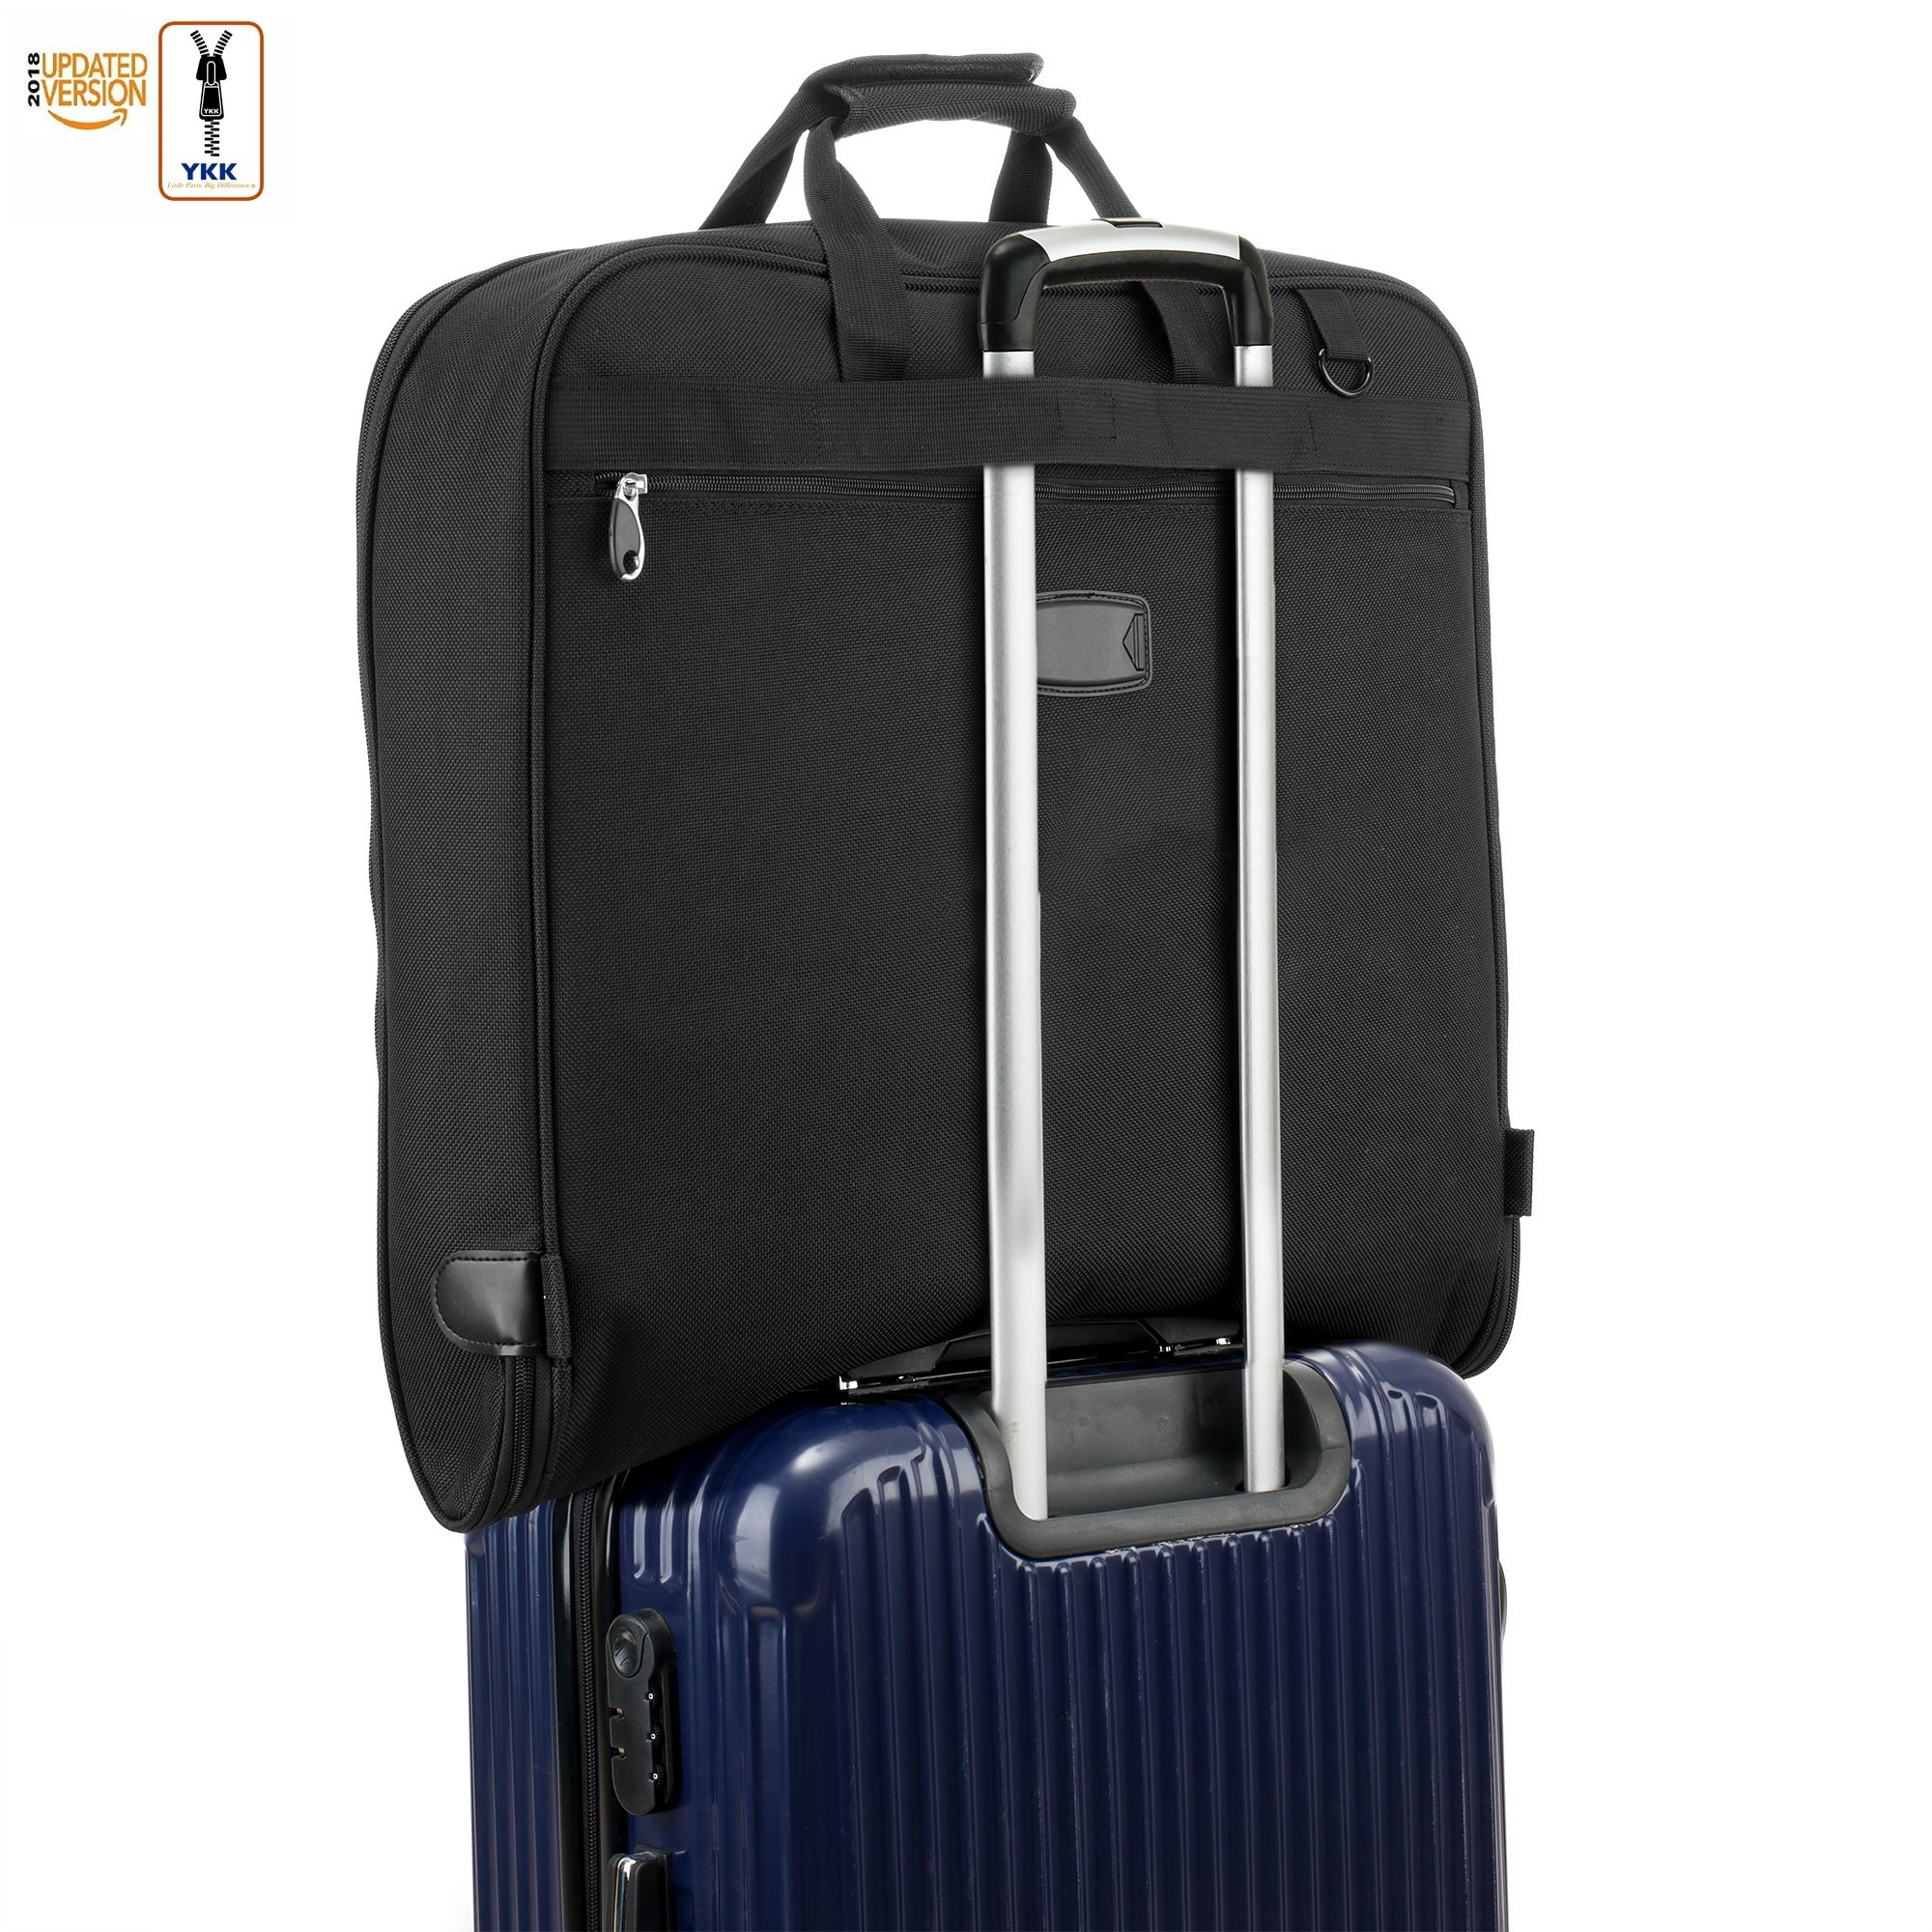 3 Suit Carry On Garment Bag for Travel & Business Trips With Shoulder Strap 40'' Bagazzi Brand by Bagazzi (Image #5)